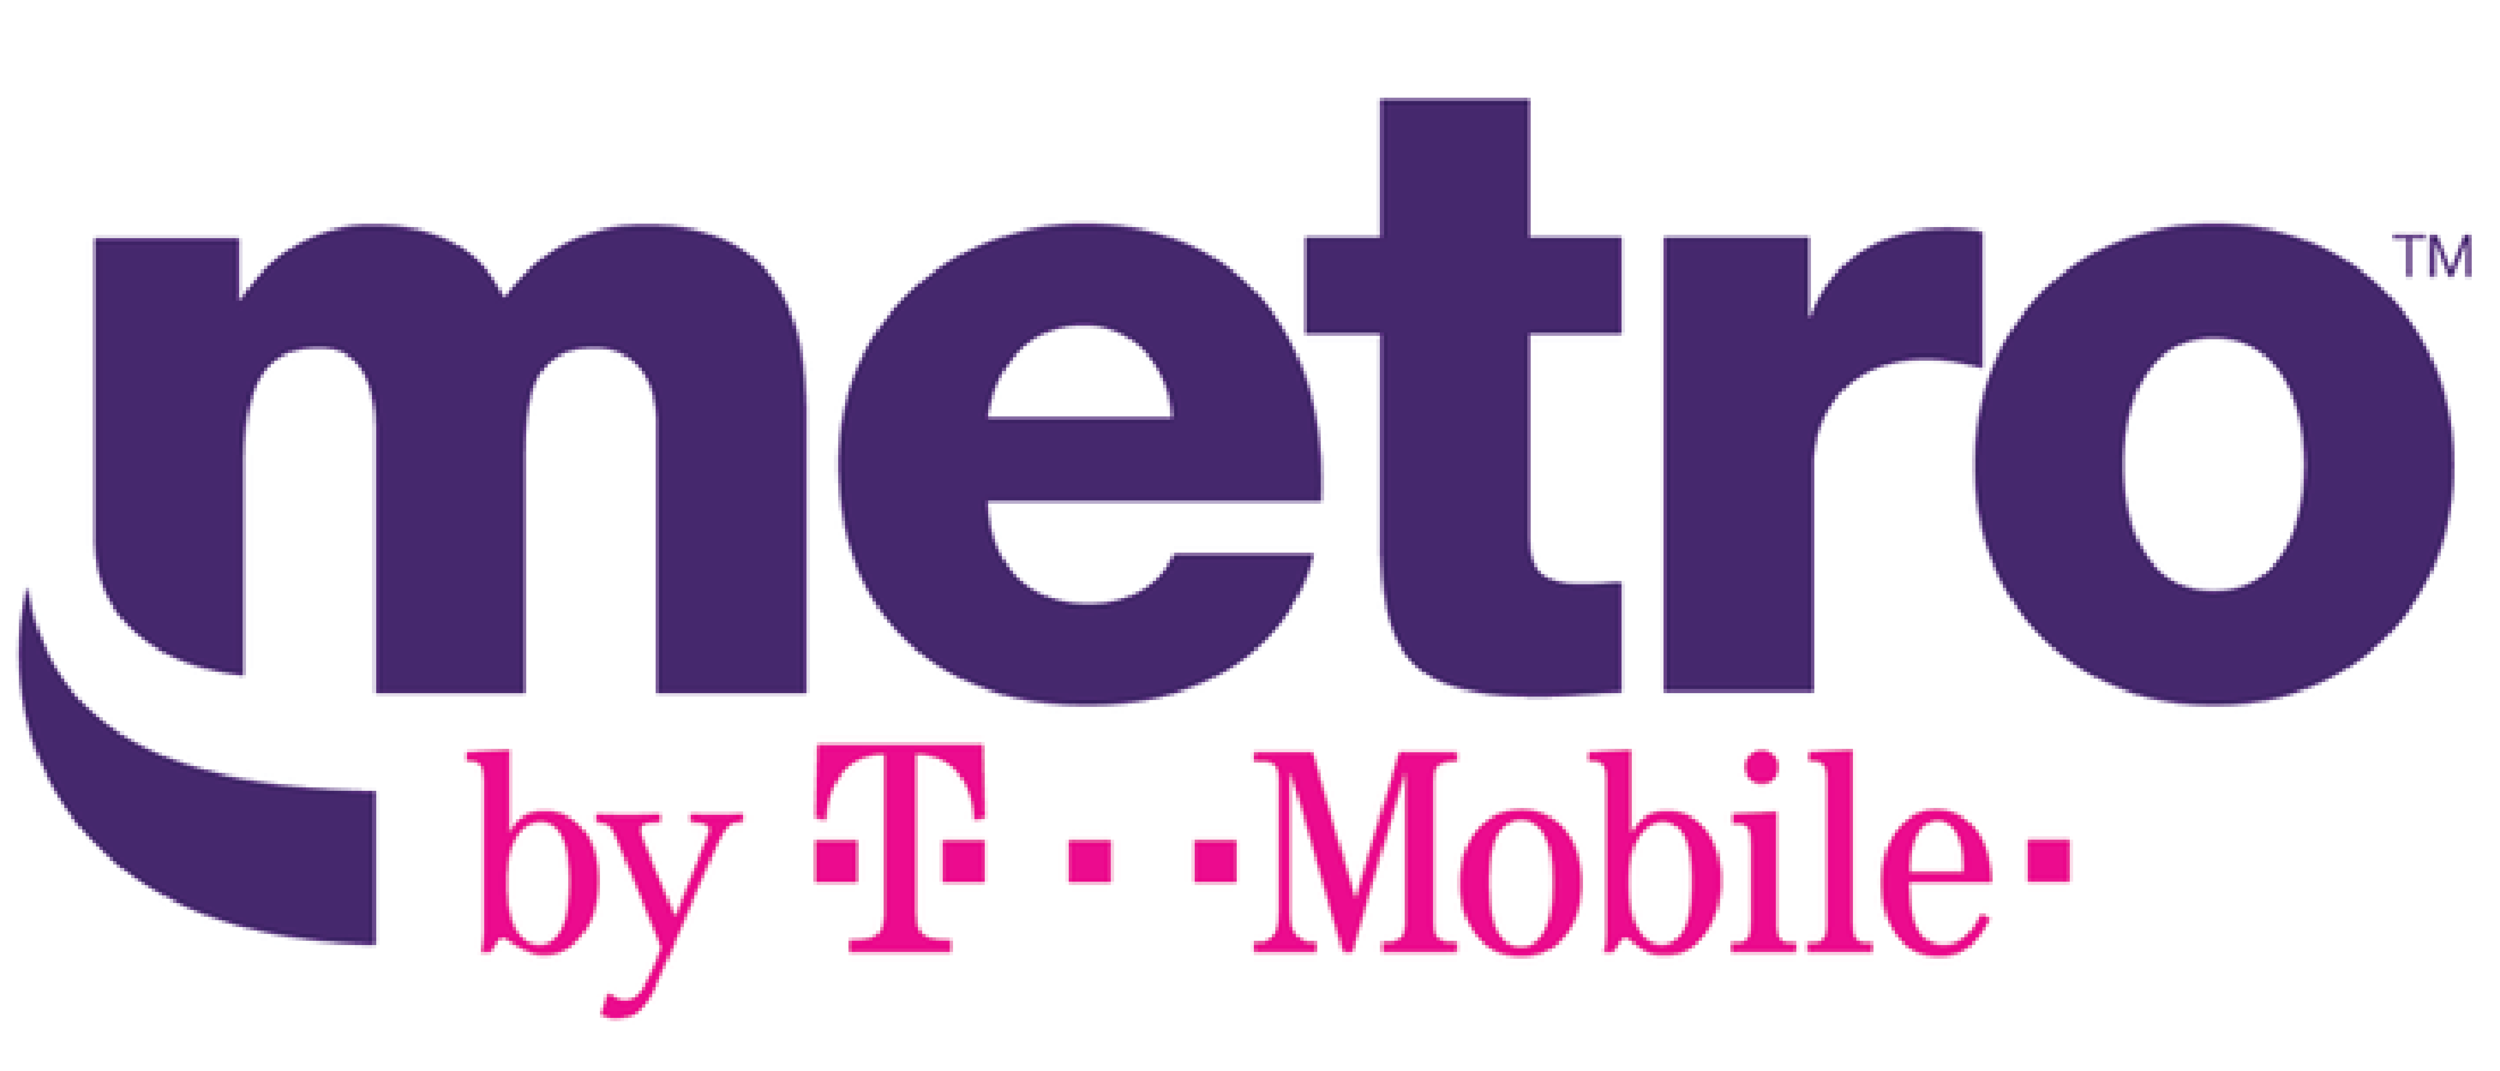 Metro by tmobile2 -01.png